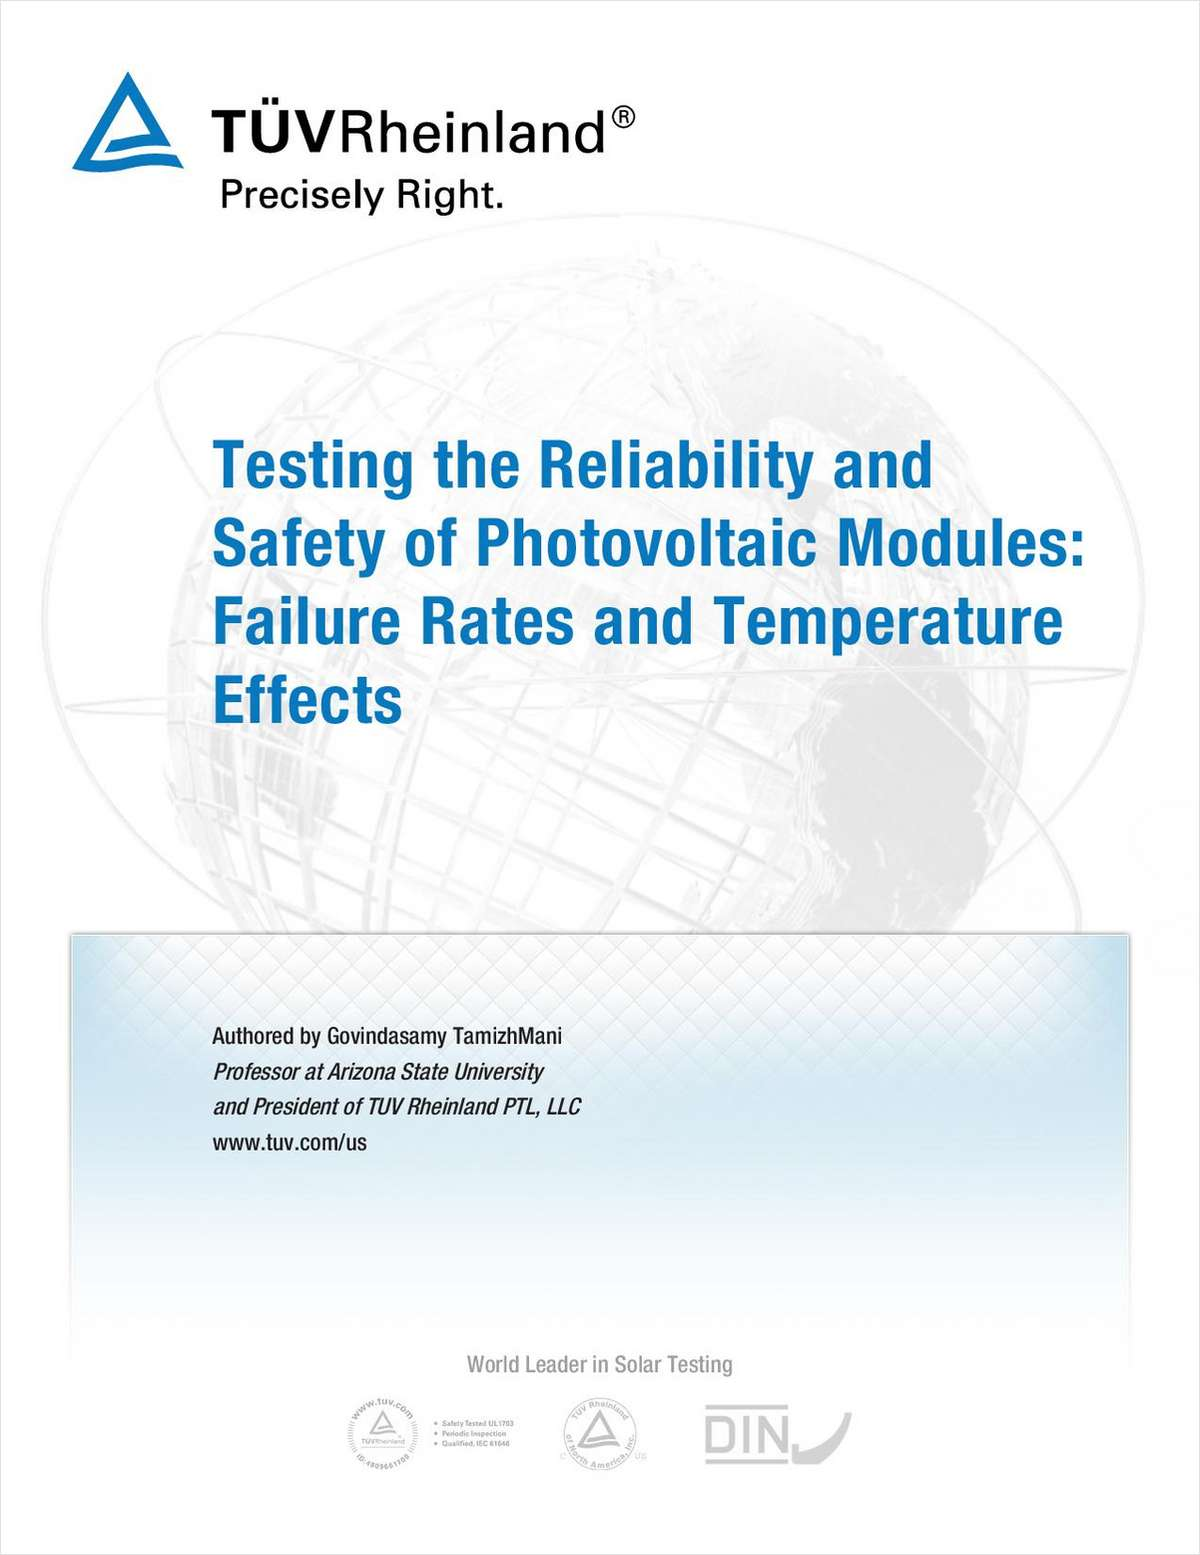 Testing the Reliability and Safety of Photovoltaic Modules: Failure Rates and Temperature Effects